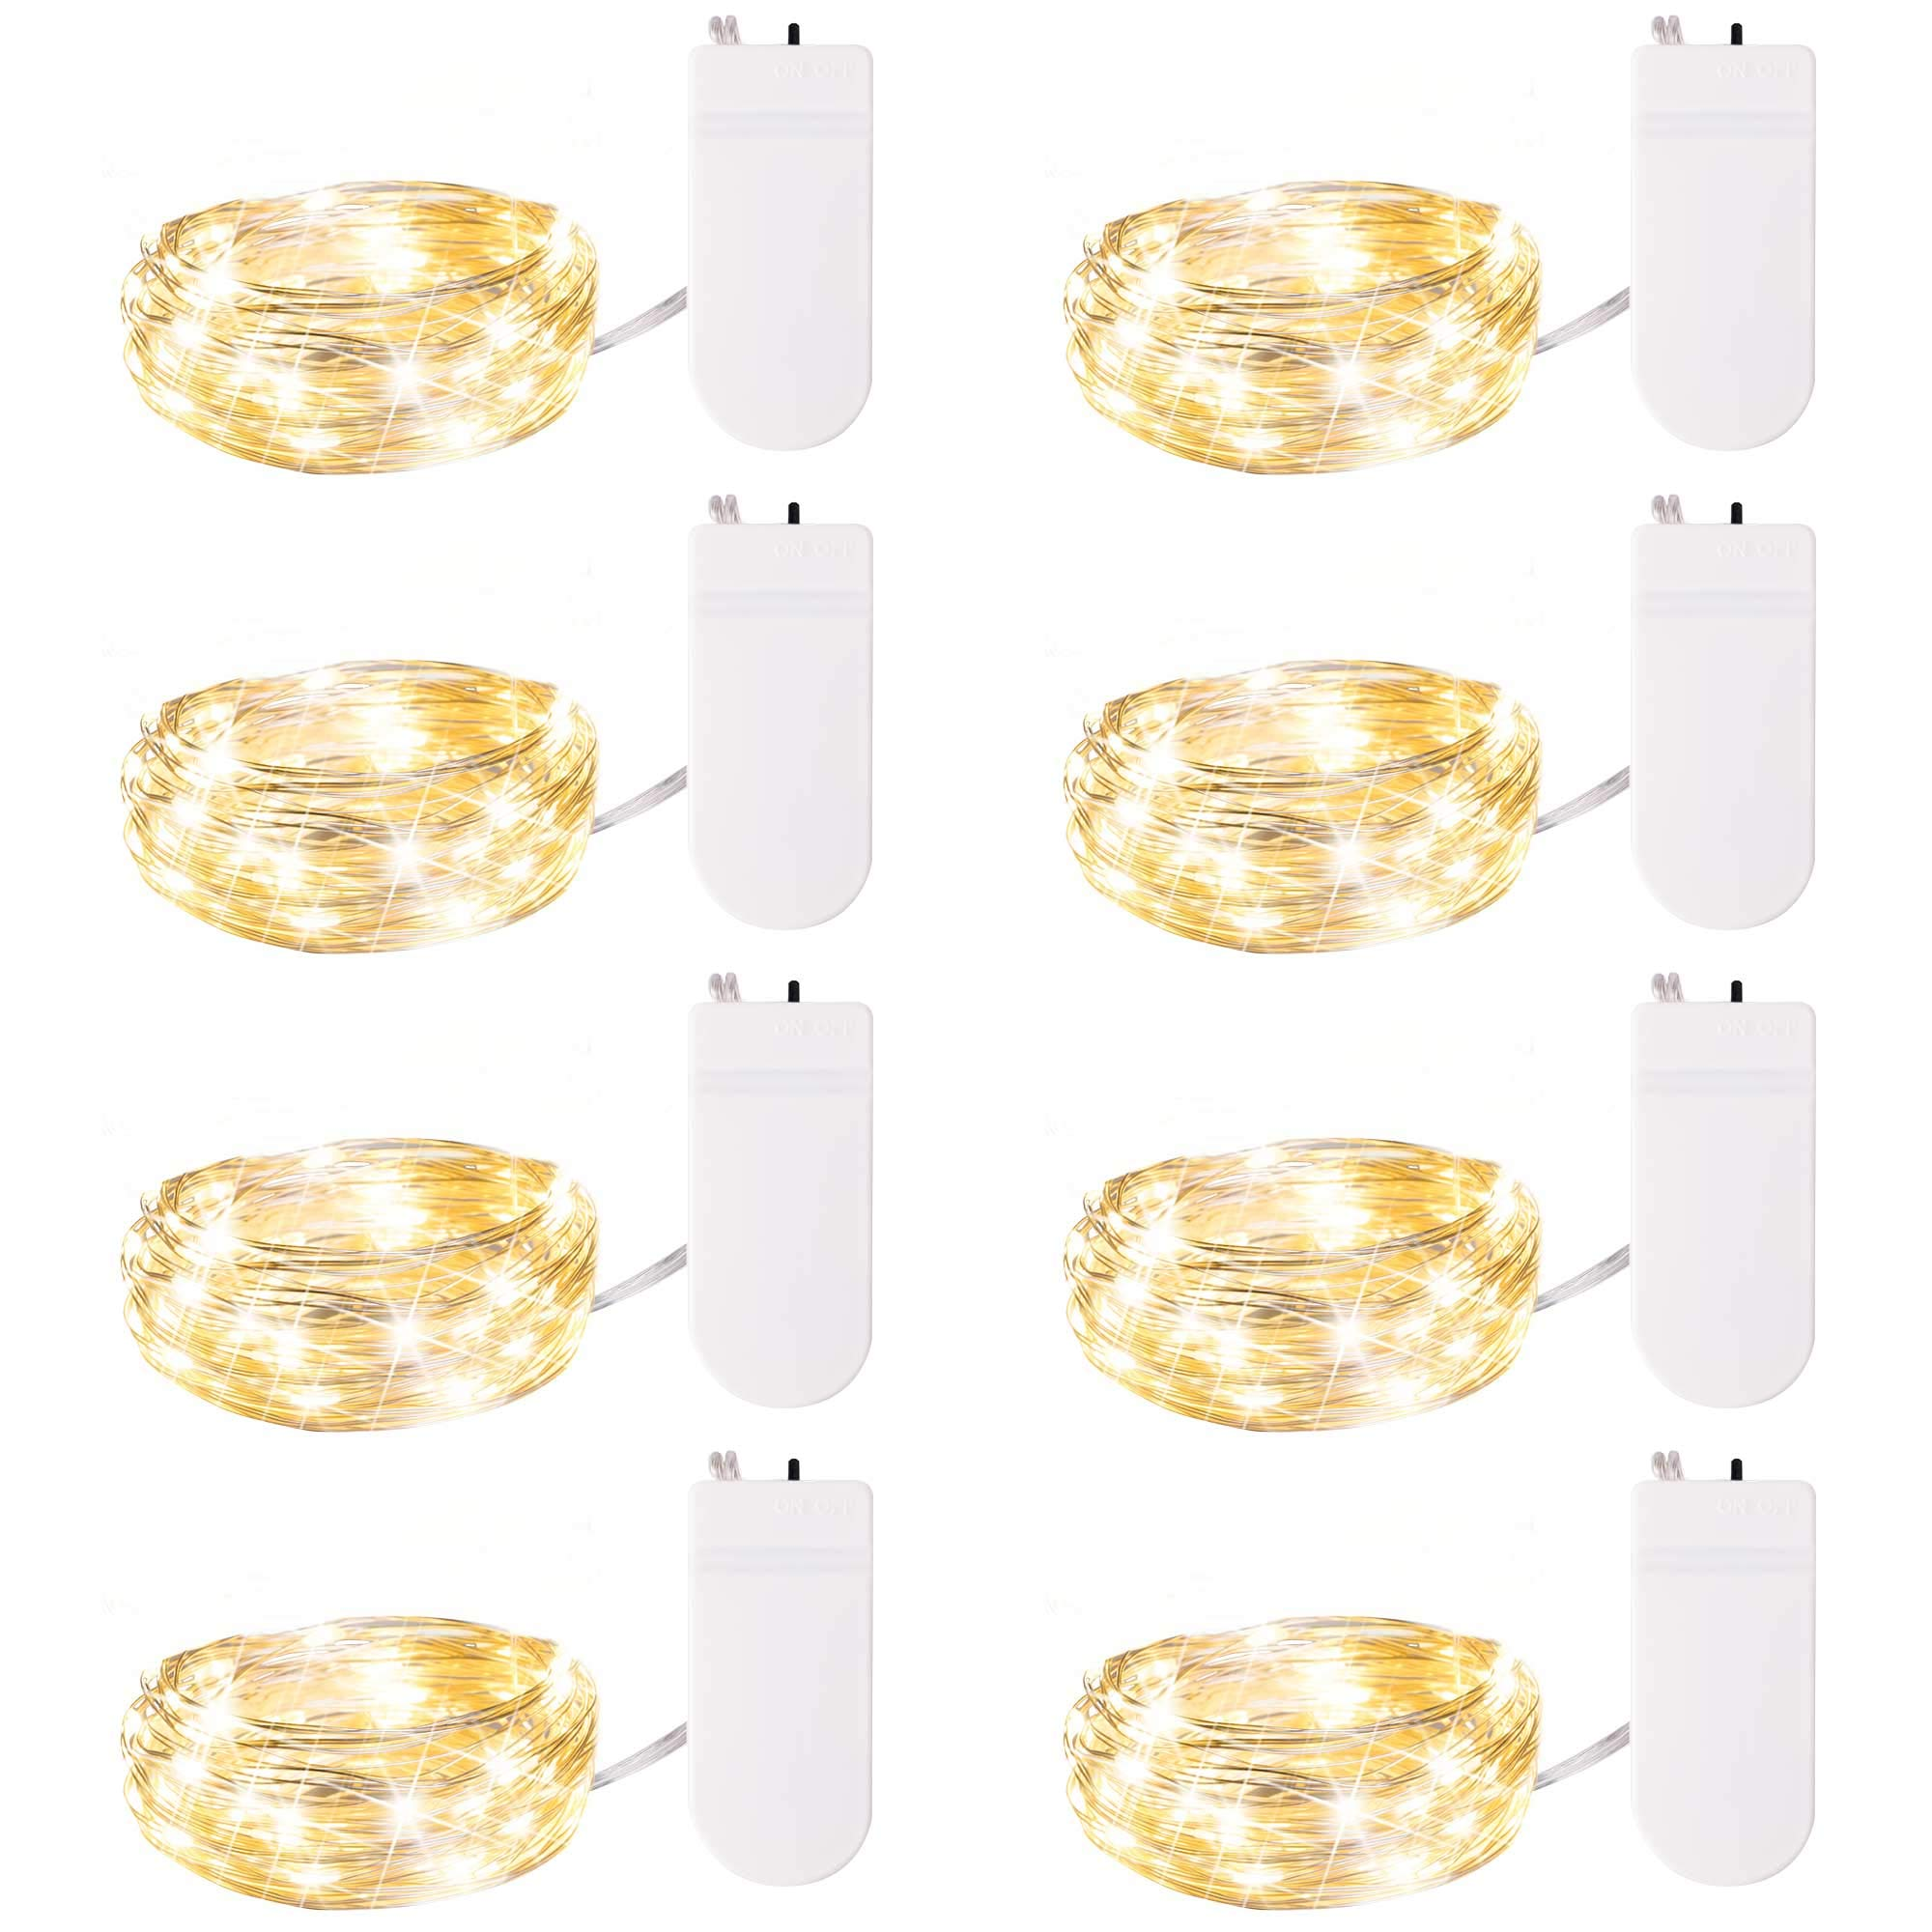 Pack of 8pcs 20LEDs Micro Starry Moon Lights on Silver Extra Thin Copper Wire, 2 x CR2032 Batteries Required and Included, 7 Feet for DIY Wedding Centerpiece(Warm White)